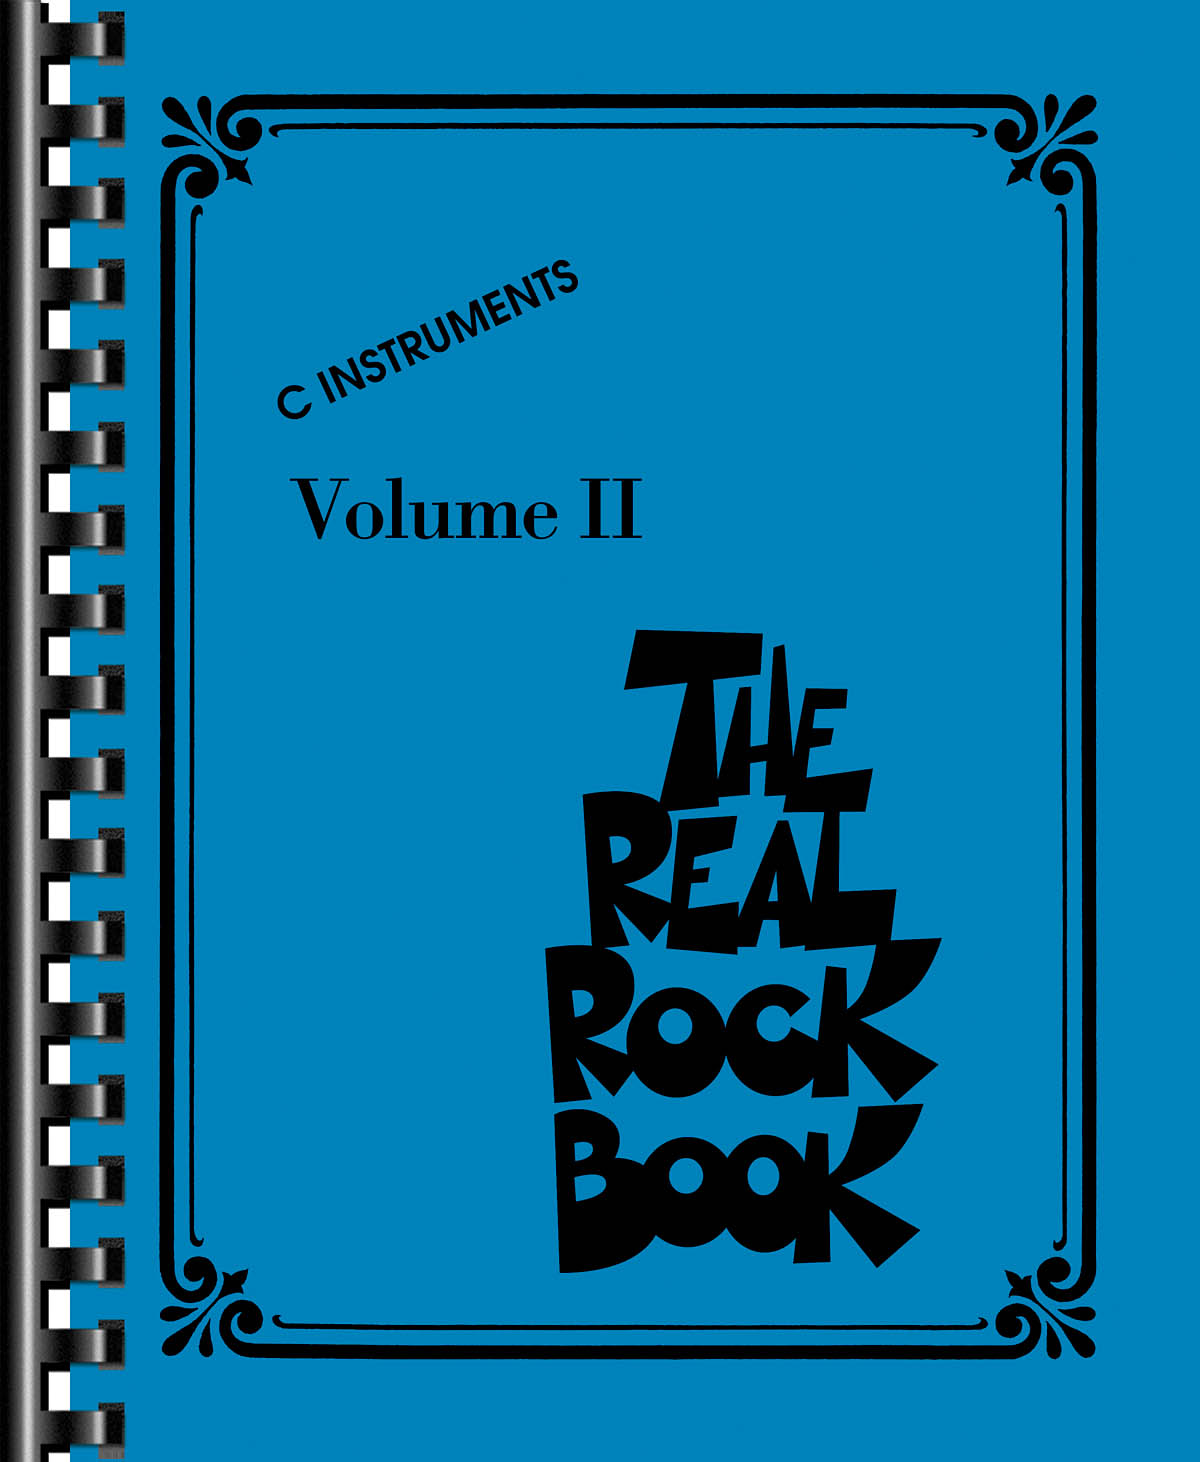 The Real Rock Book - Volume II: C Instrument: Mixed Songbook